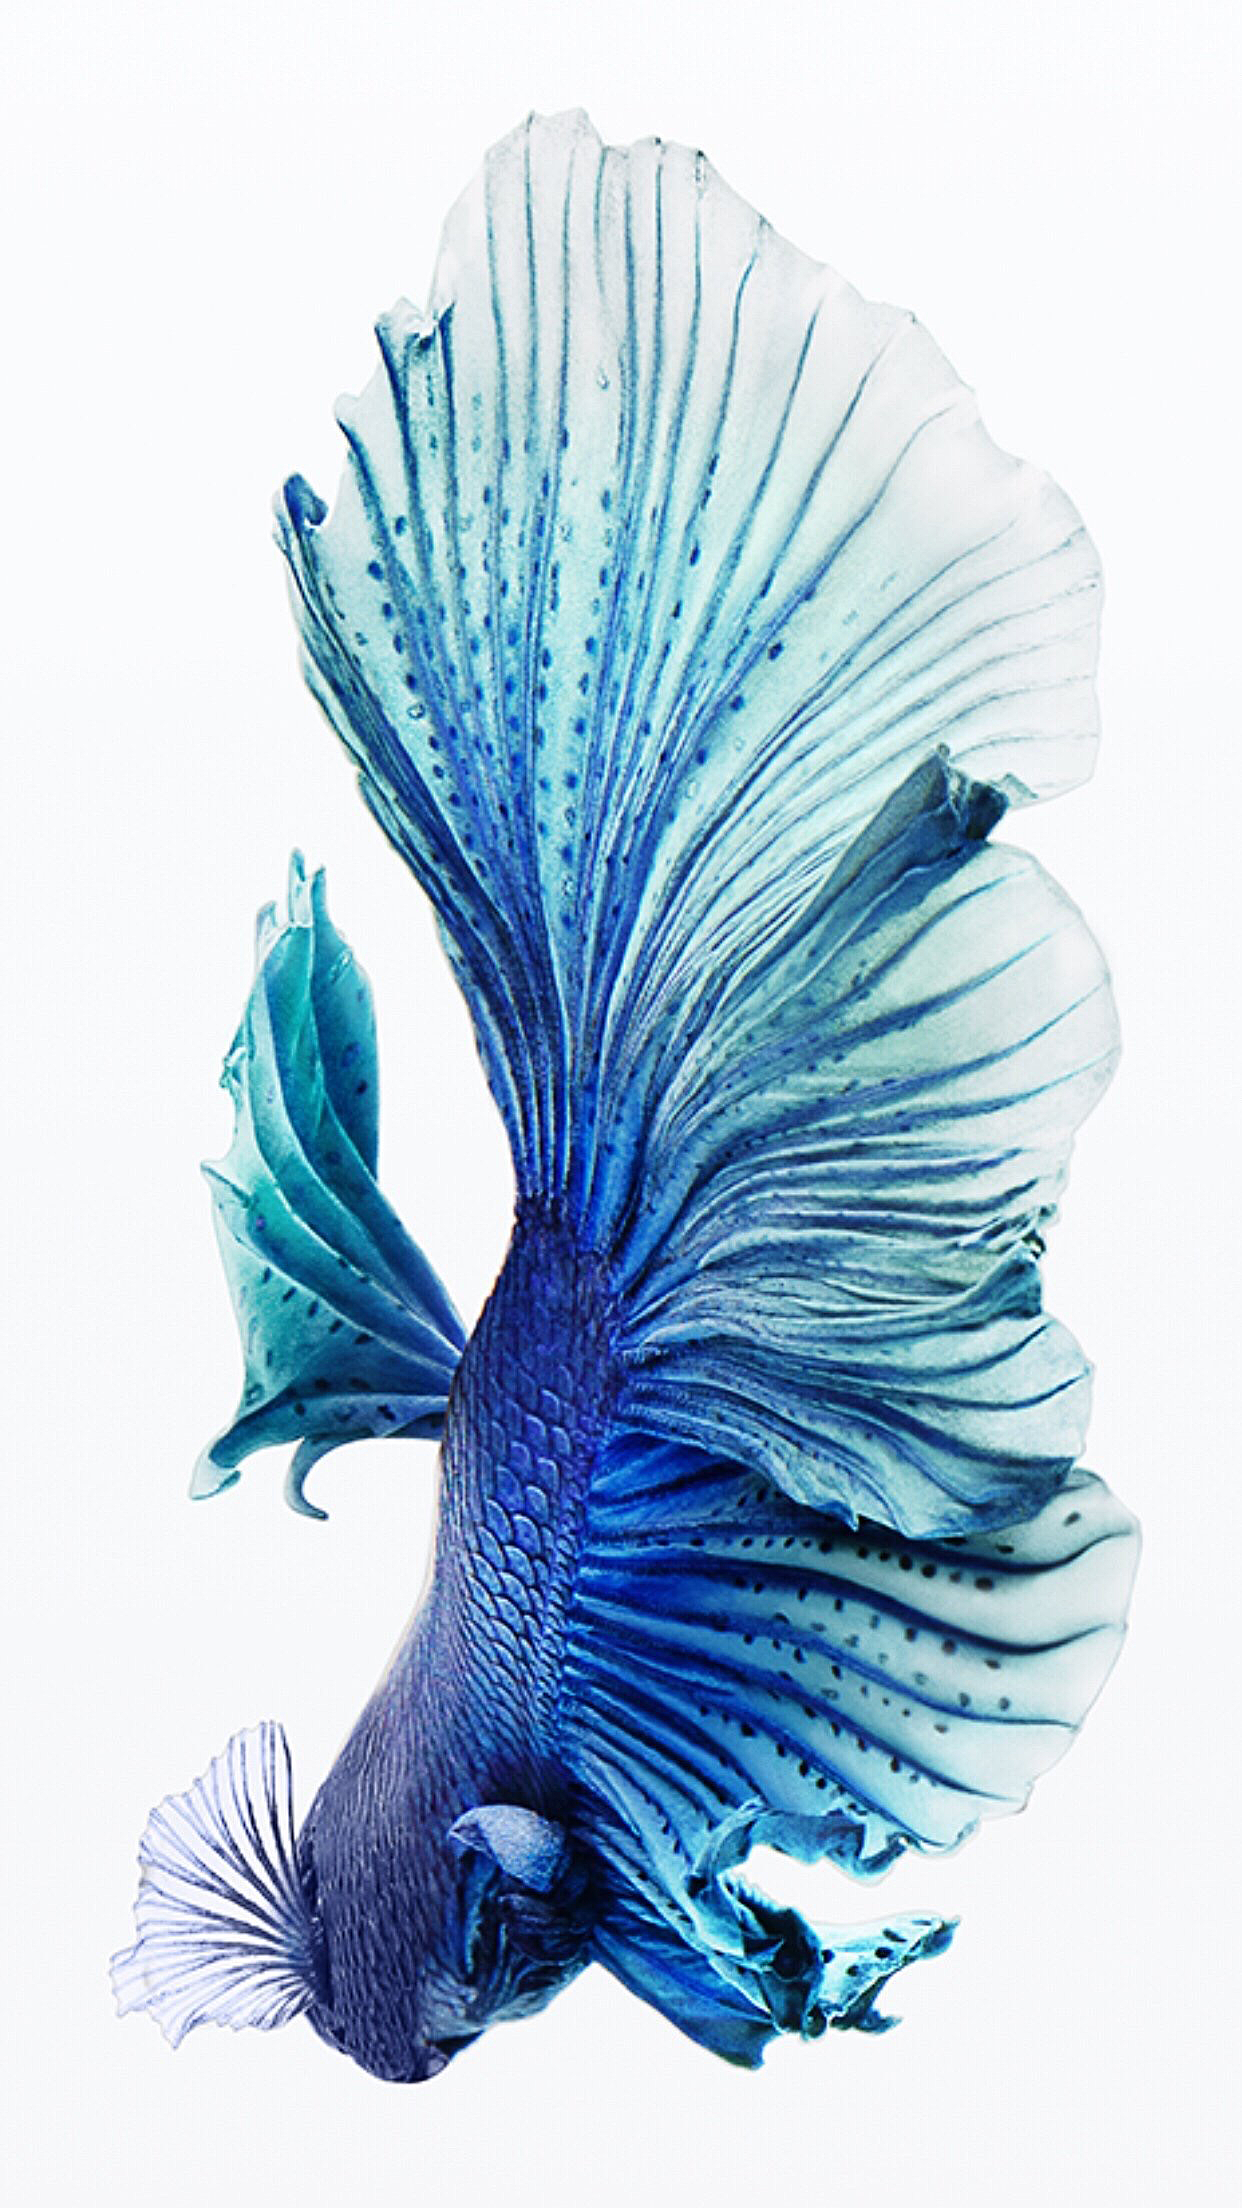 iPhone Fish Wallpapers Free Download Бойцовая рыбка